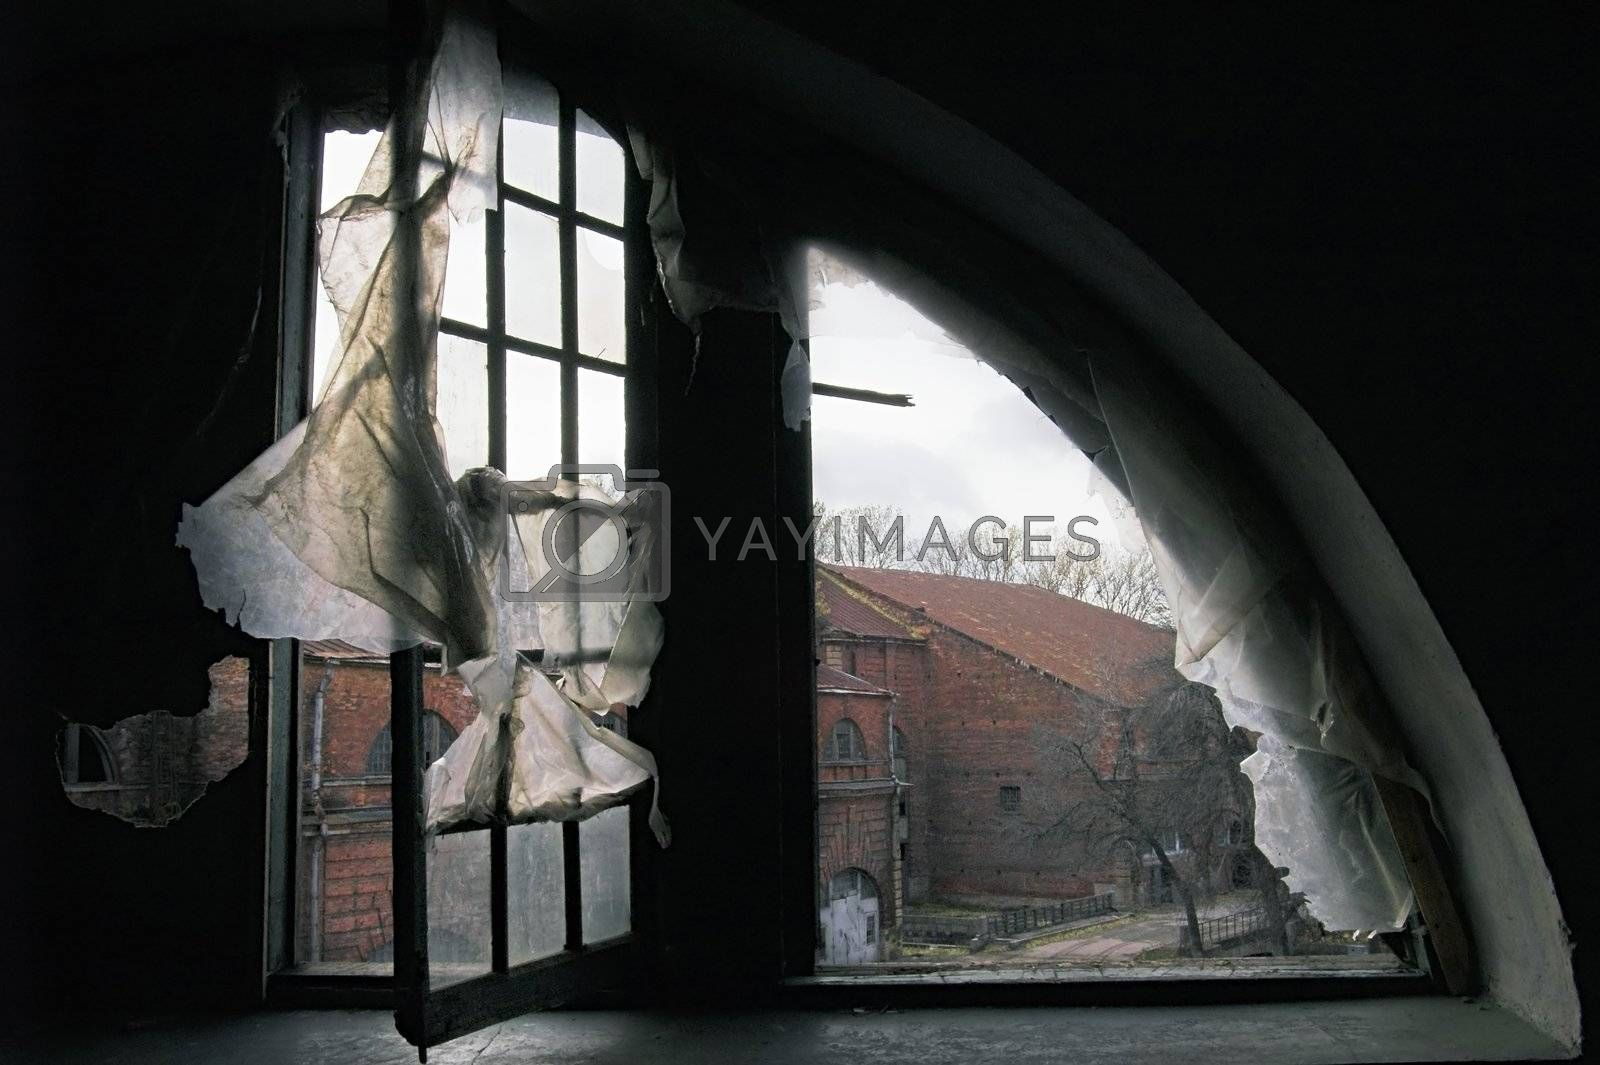 A view through a window in an abandoned house.